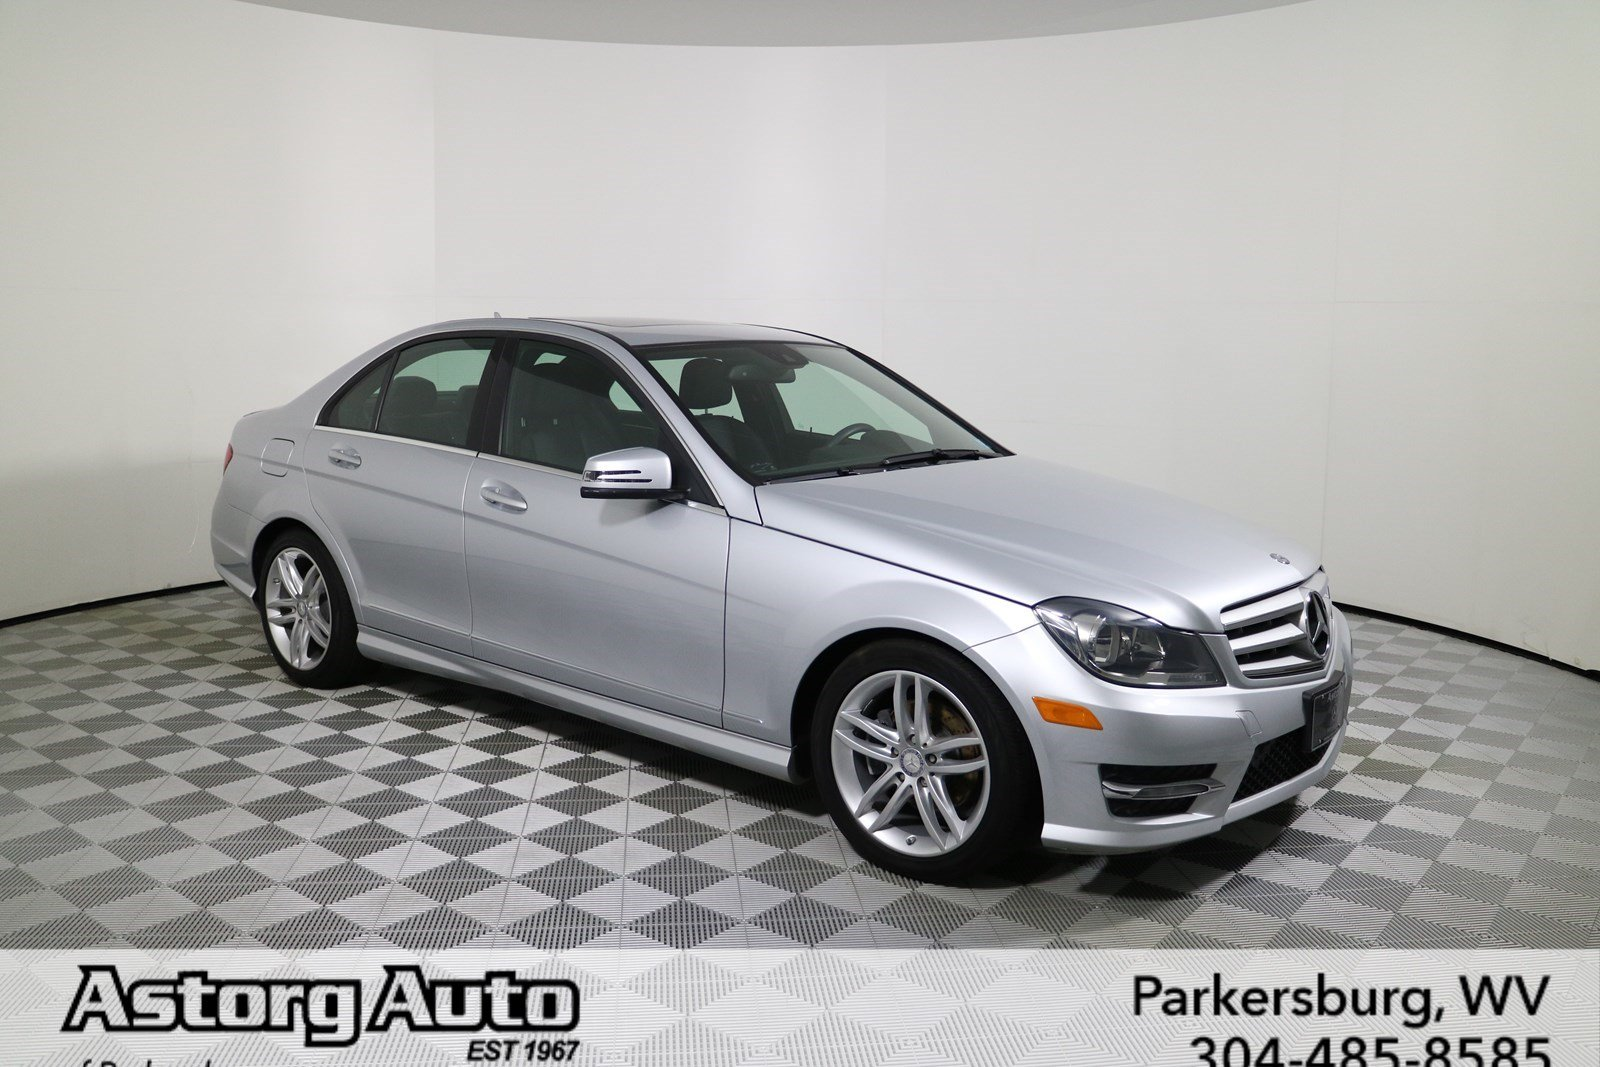 pre owned 2012 mercedes benz c class c 300 sport sedan in parkersburg m5067a astorg motor company. Black Bedroom Furniture Sets. Home Design Ideas